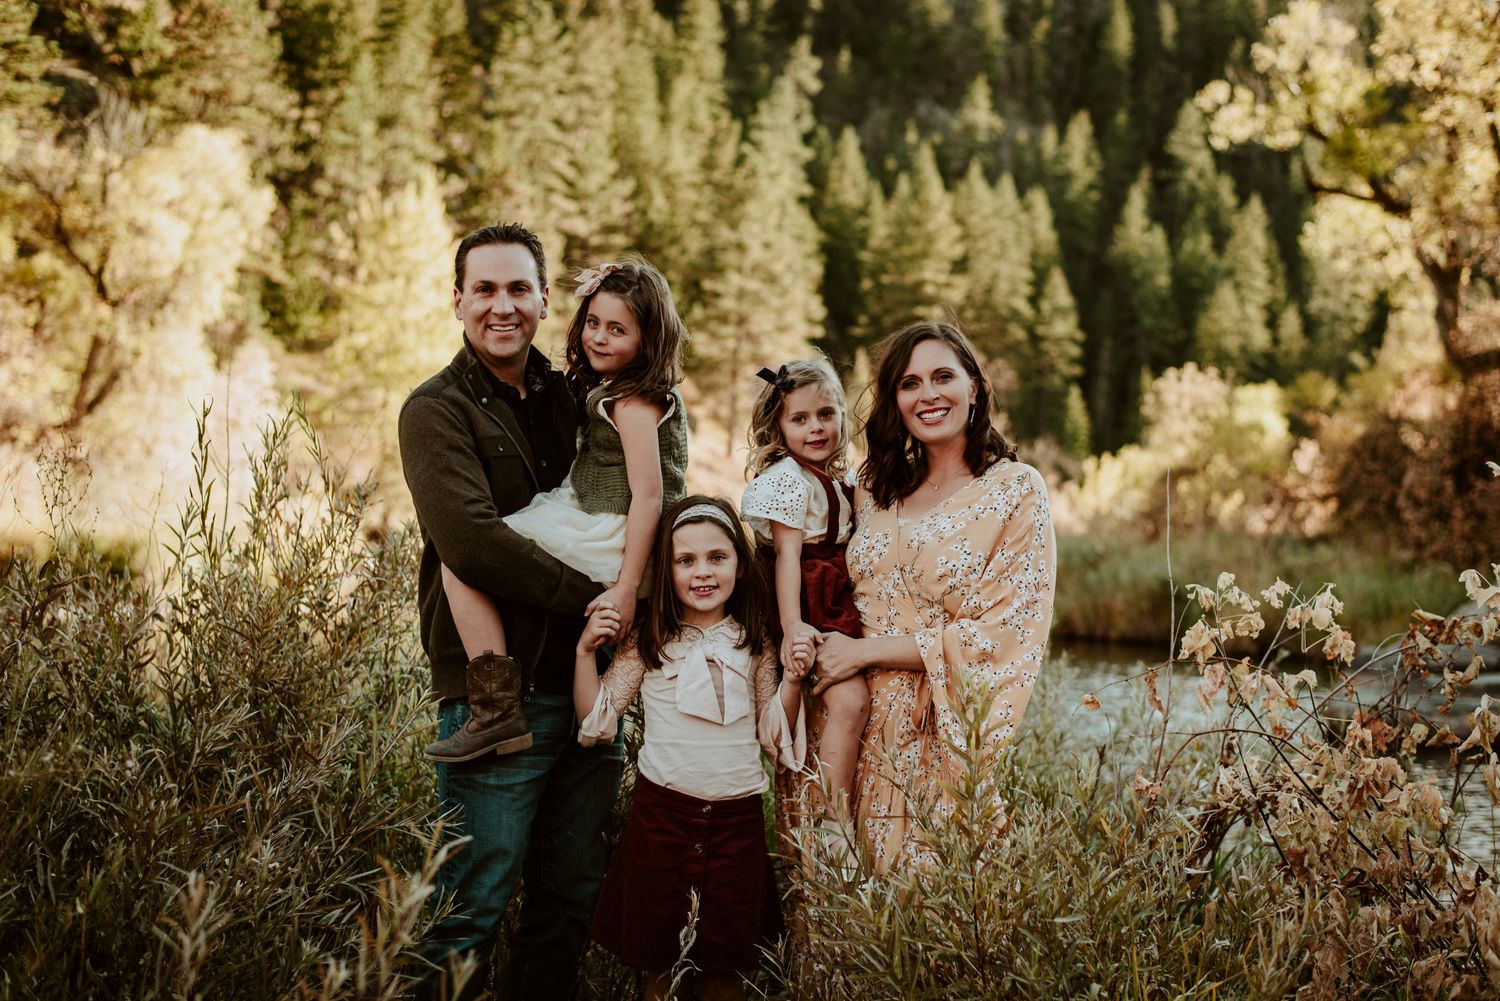 fort collins family photographer, fort collins maternity photographer, fort collins baby photographer